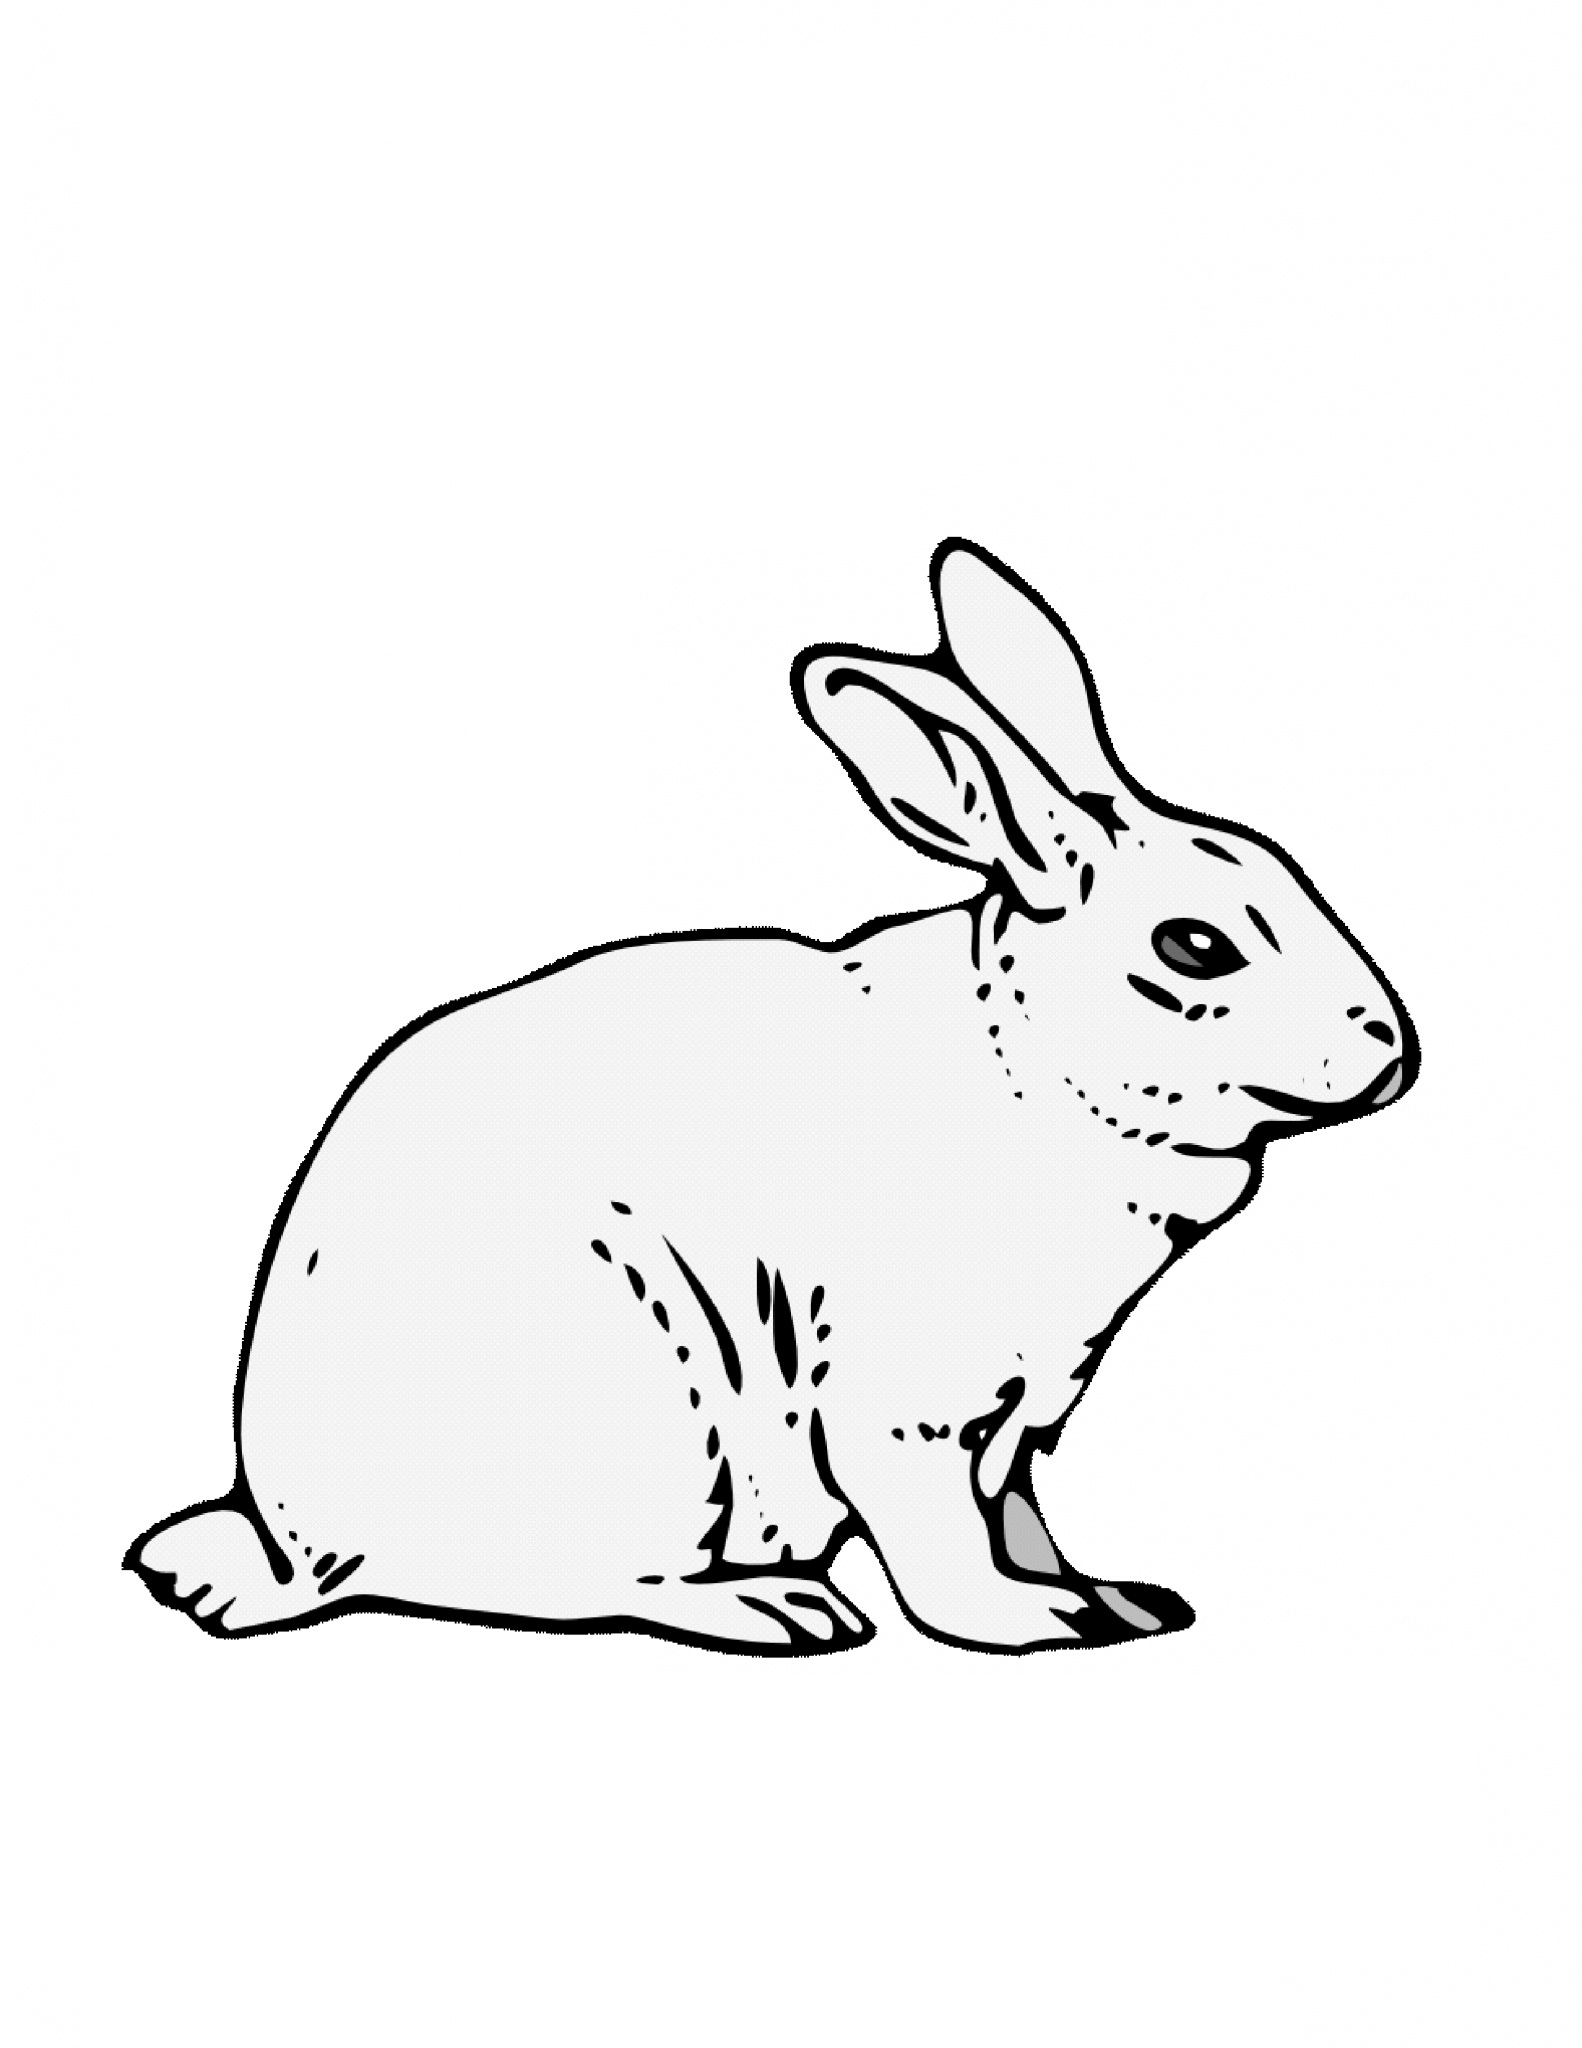 1582x2048 Draw Realistic Rabbit How To Draw And Paint A Treat Filled